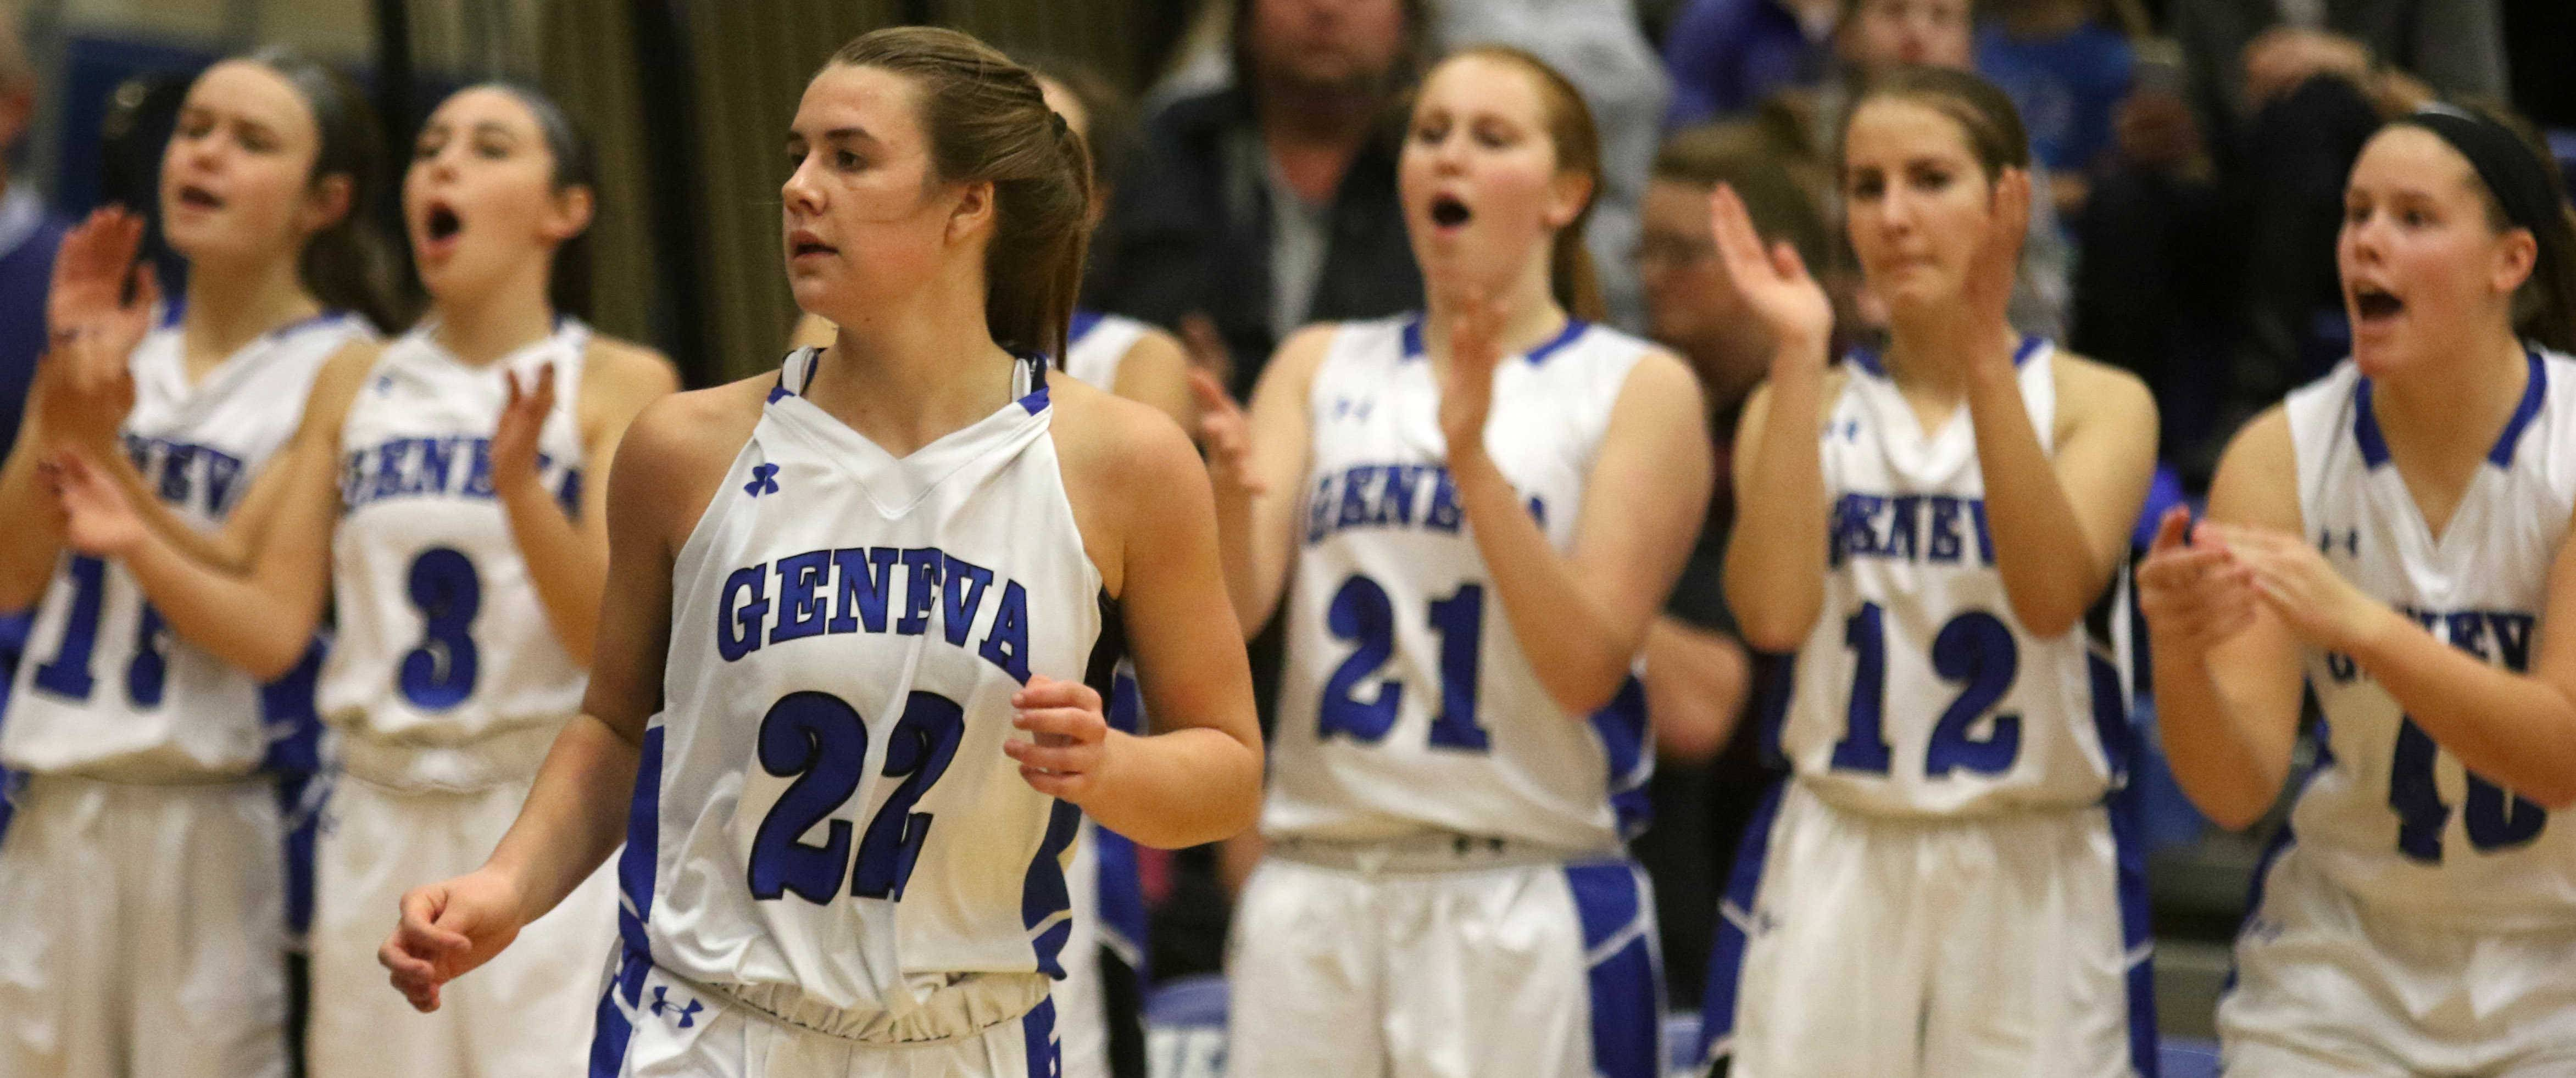 Geneva's Brie Borkowicz heads downcourt to the cheers of her teammates after she drained a 3-point basket against St. Charles North during varsity girls basketball at Geneva Friday night.